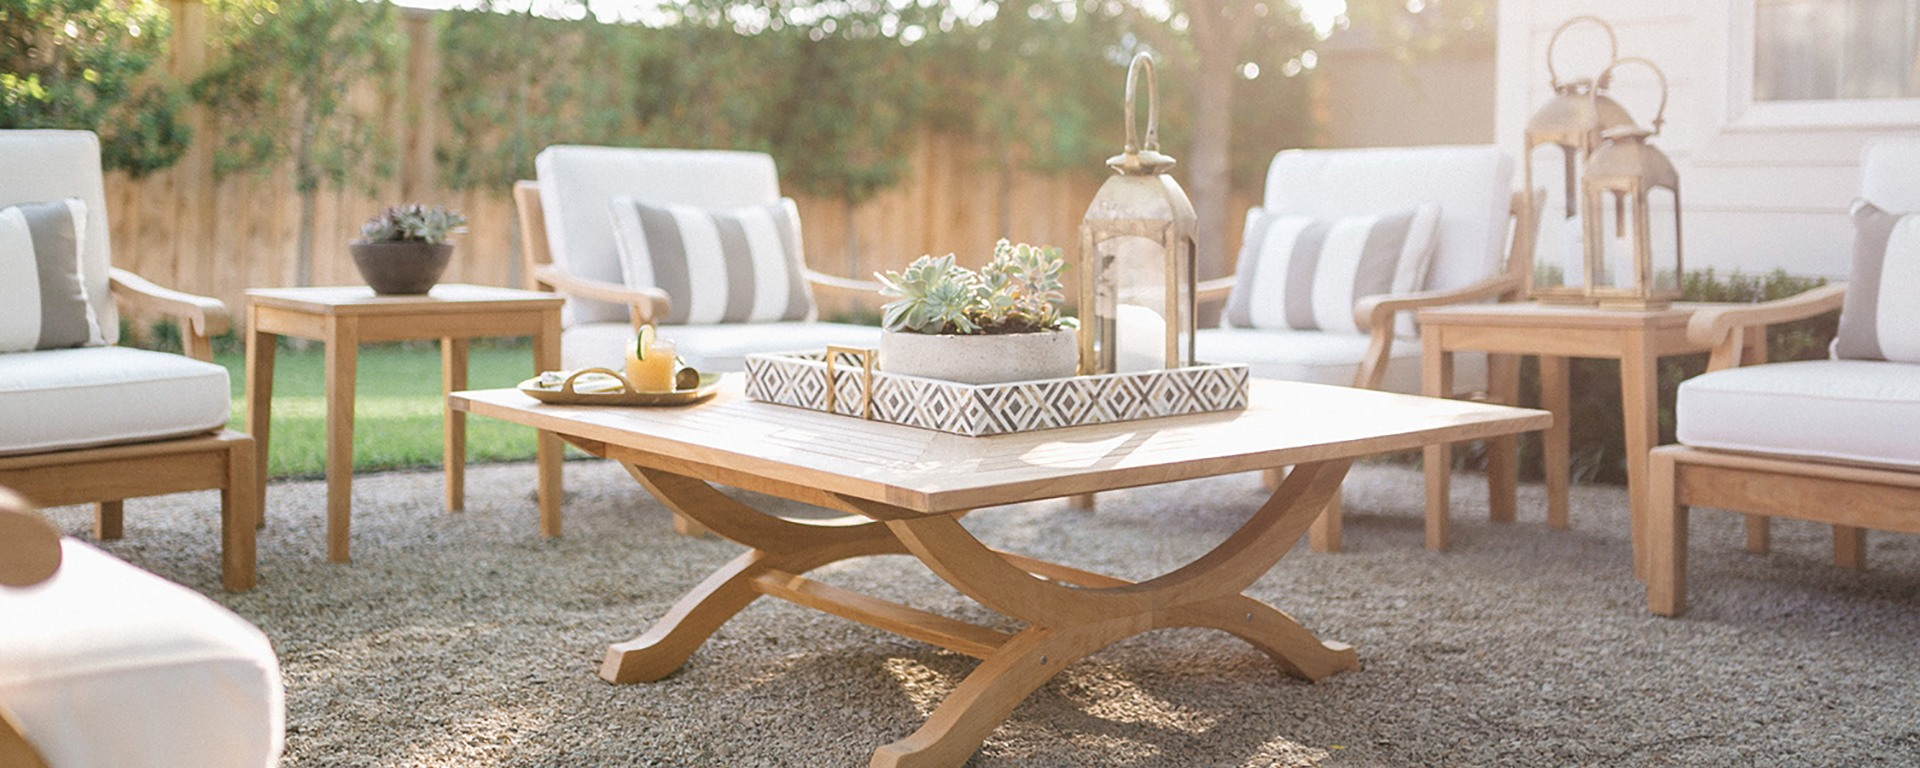 style scribe s patio paradise